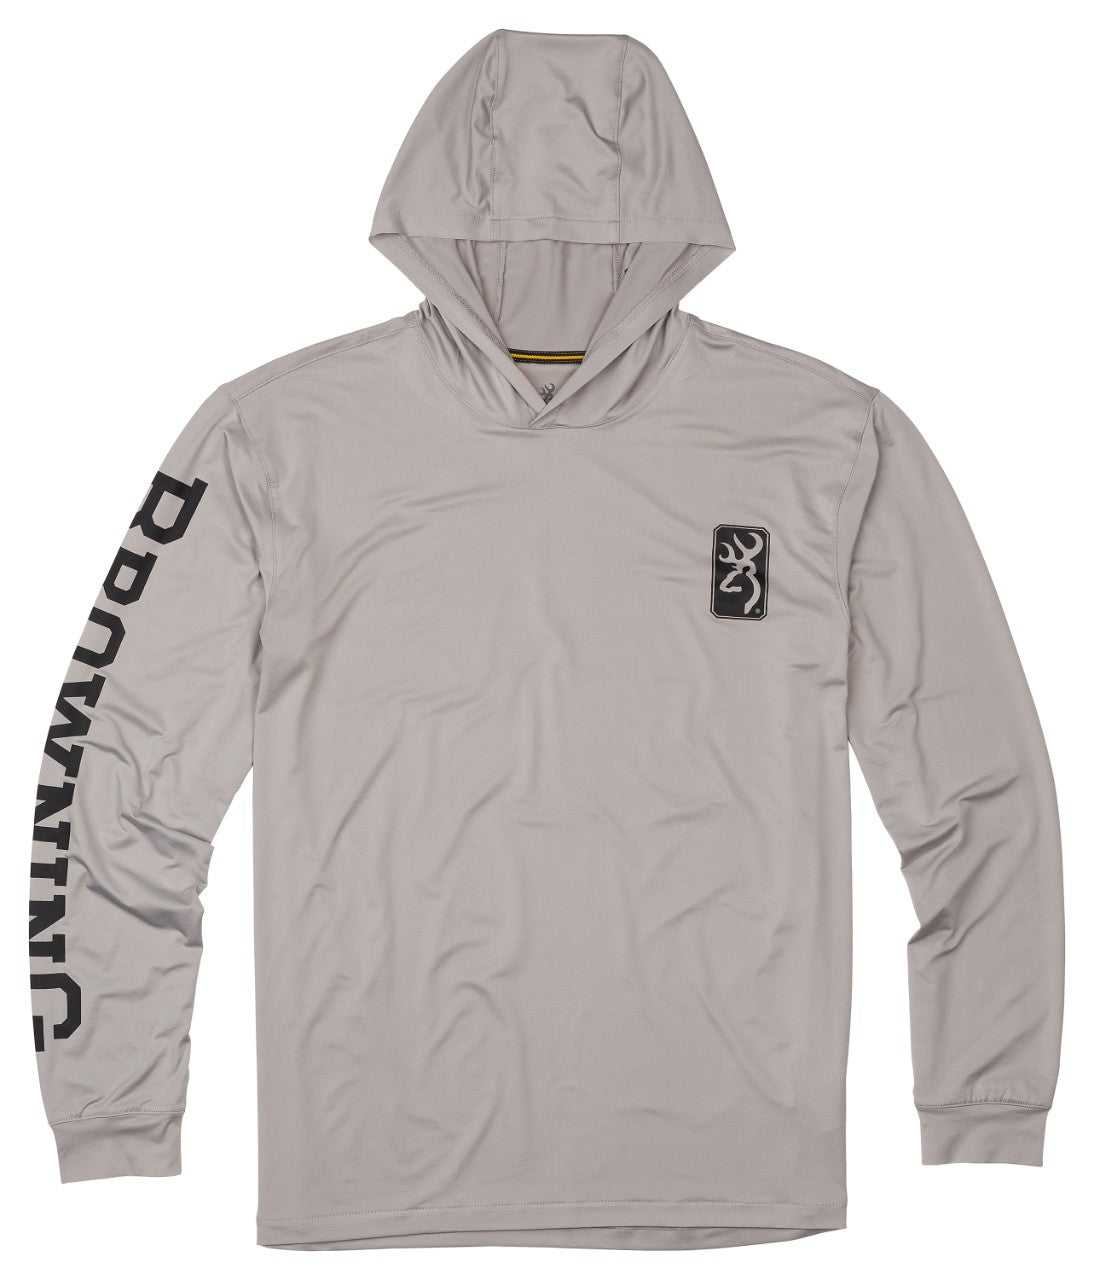 SHT,HOODED,LS,TECH,LIGHT GRAY,2XL